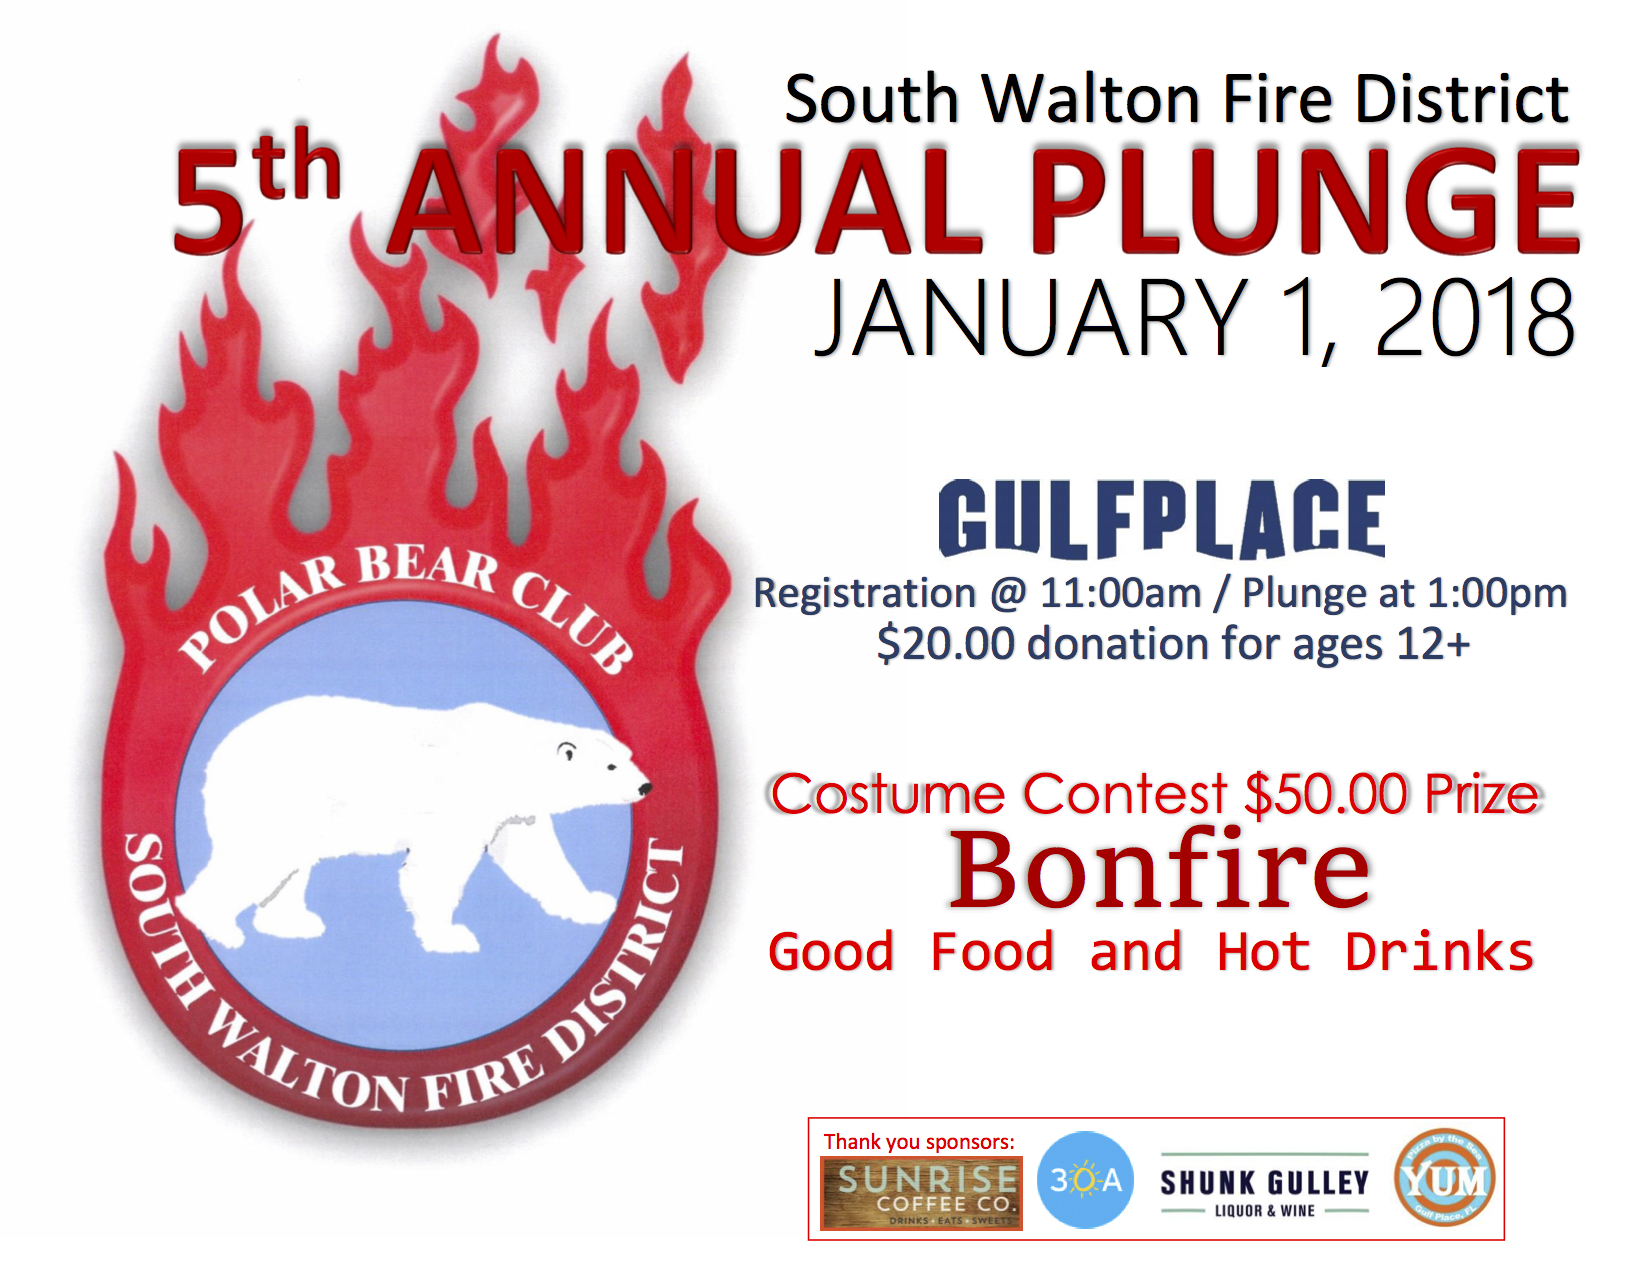 Fifth Annual Polar Plunge at Gulf Place Jan 1st 2018